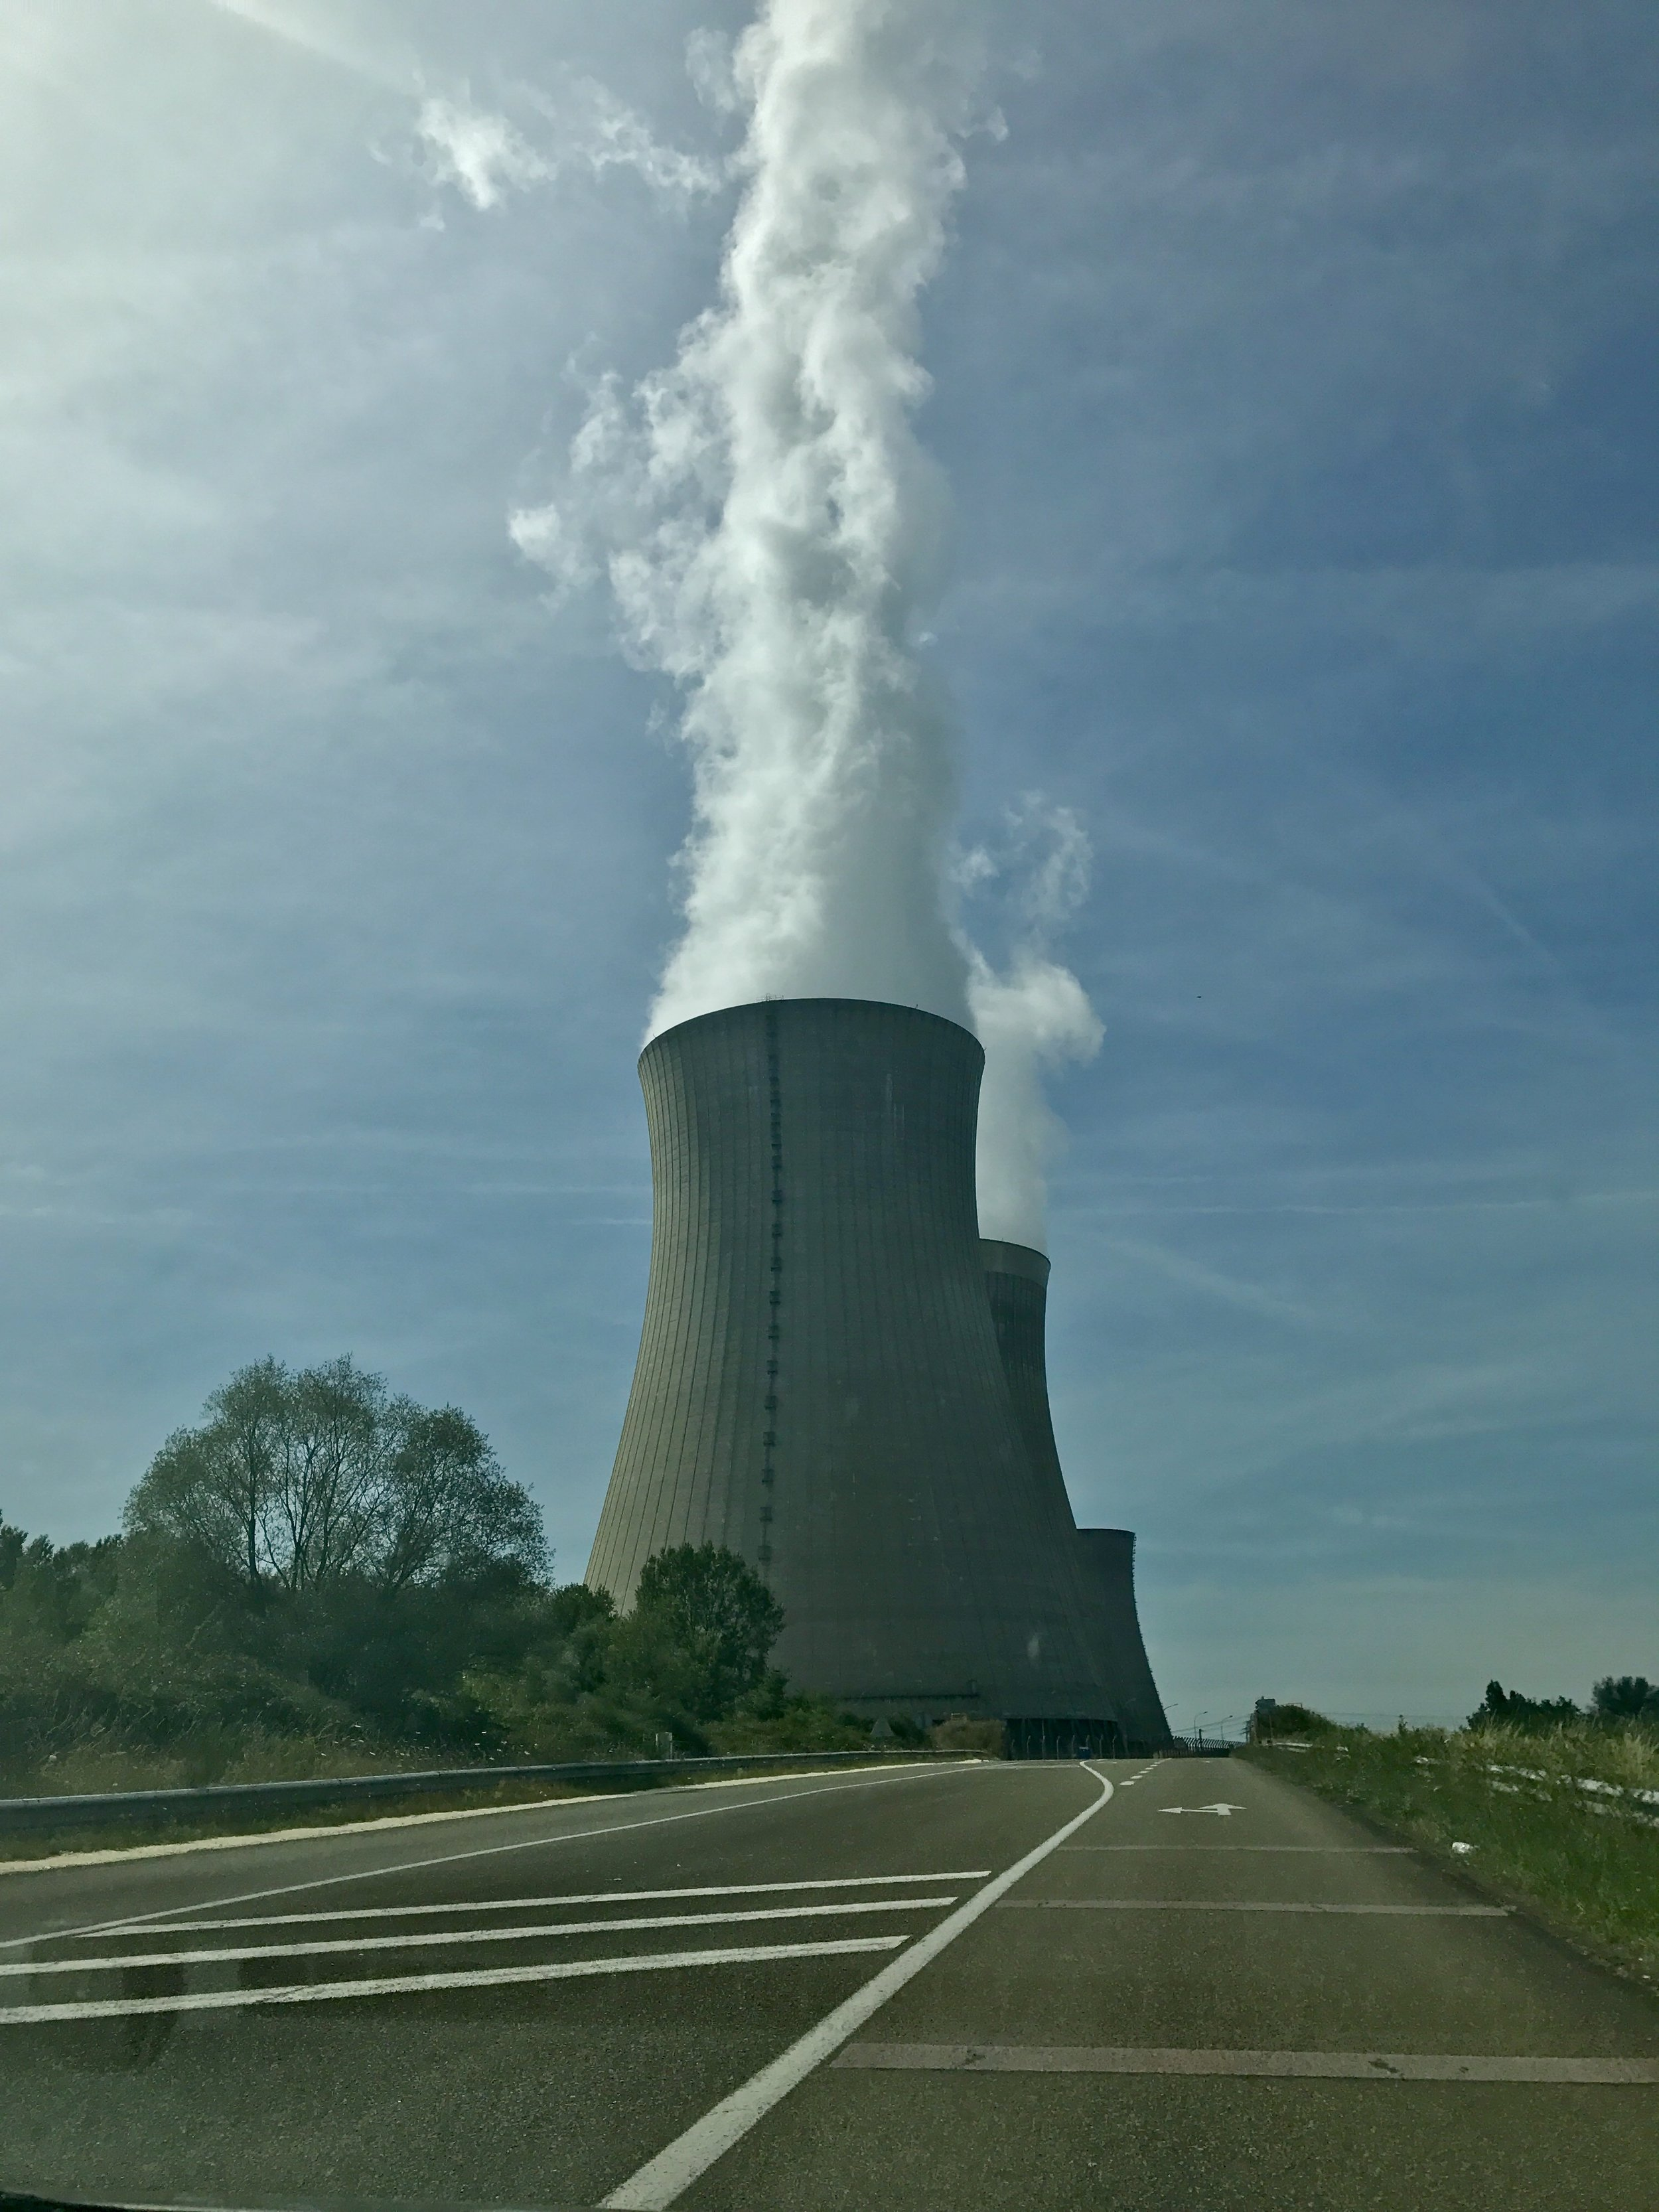 Driving by one of France's 58 nuclear power plants